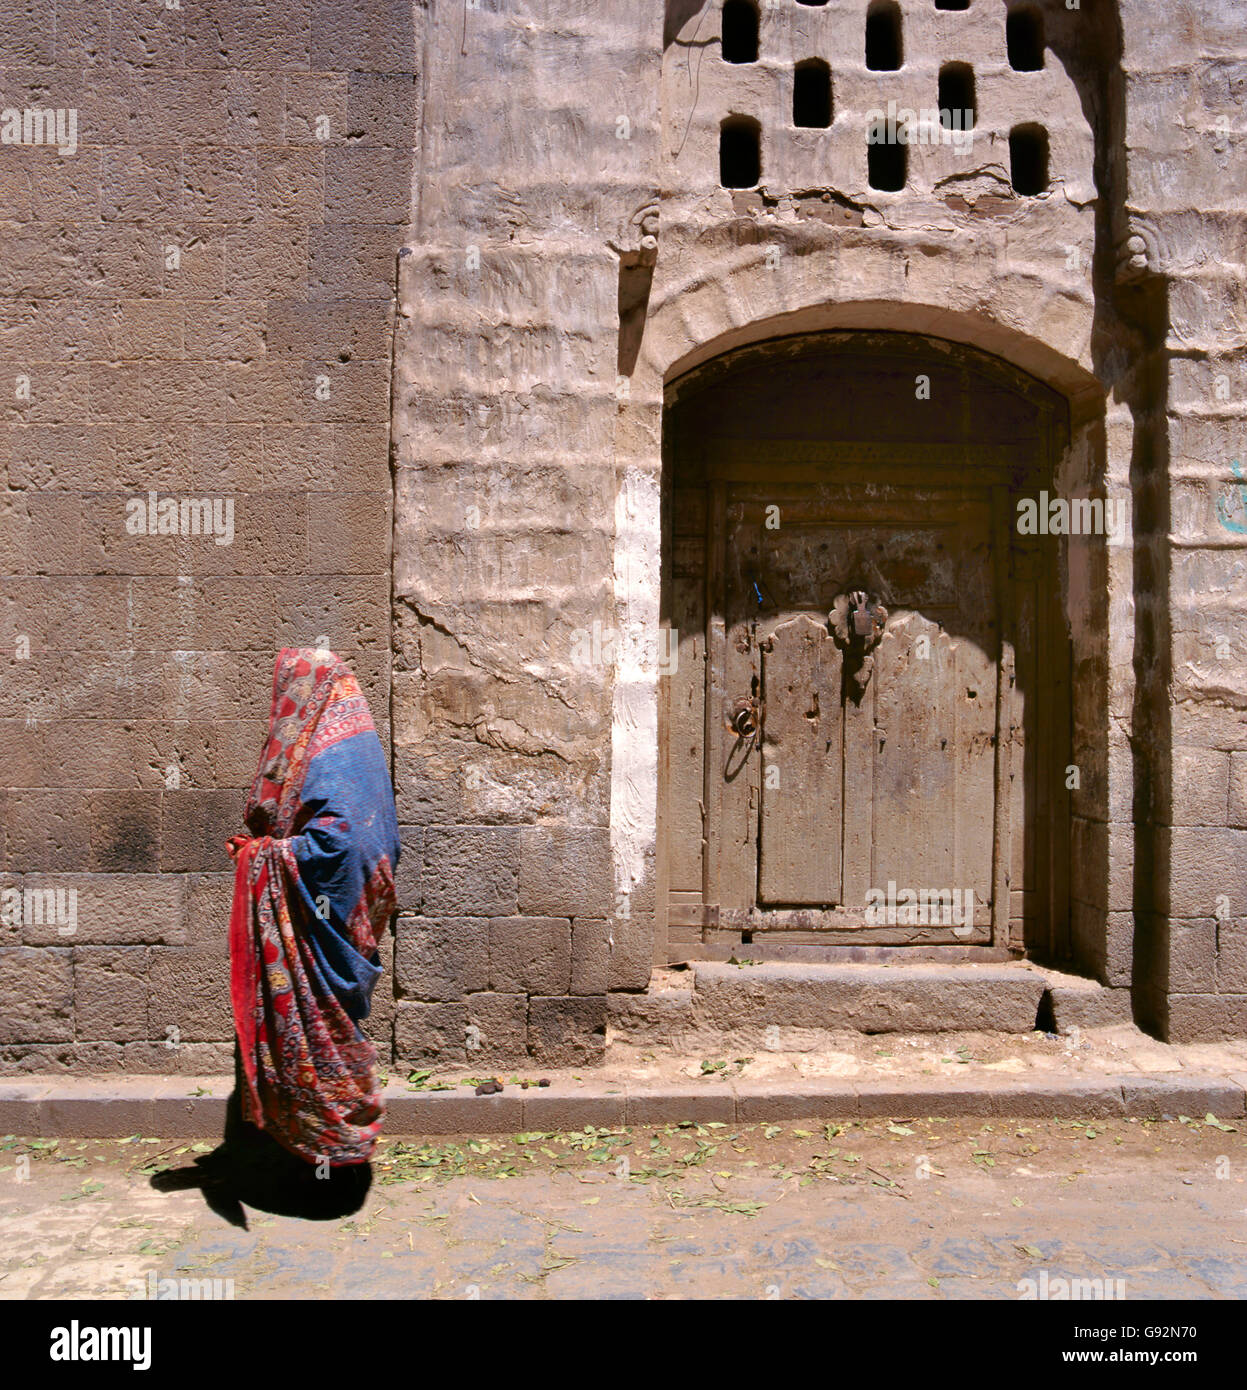 A veiled Muslim woman walks on a Sana'a street, Yemen. At background typical Yemen houses. - Stock Image